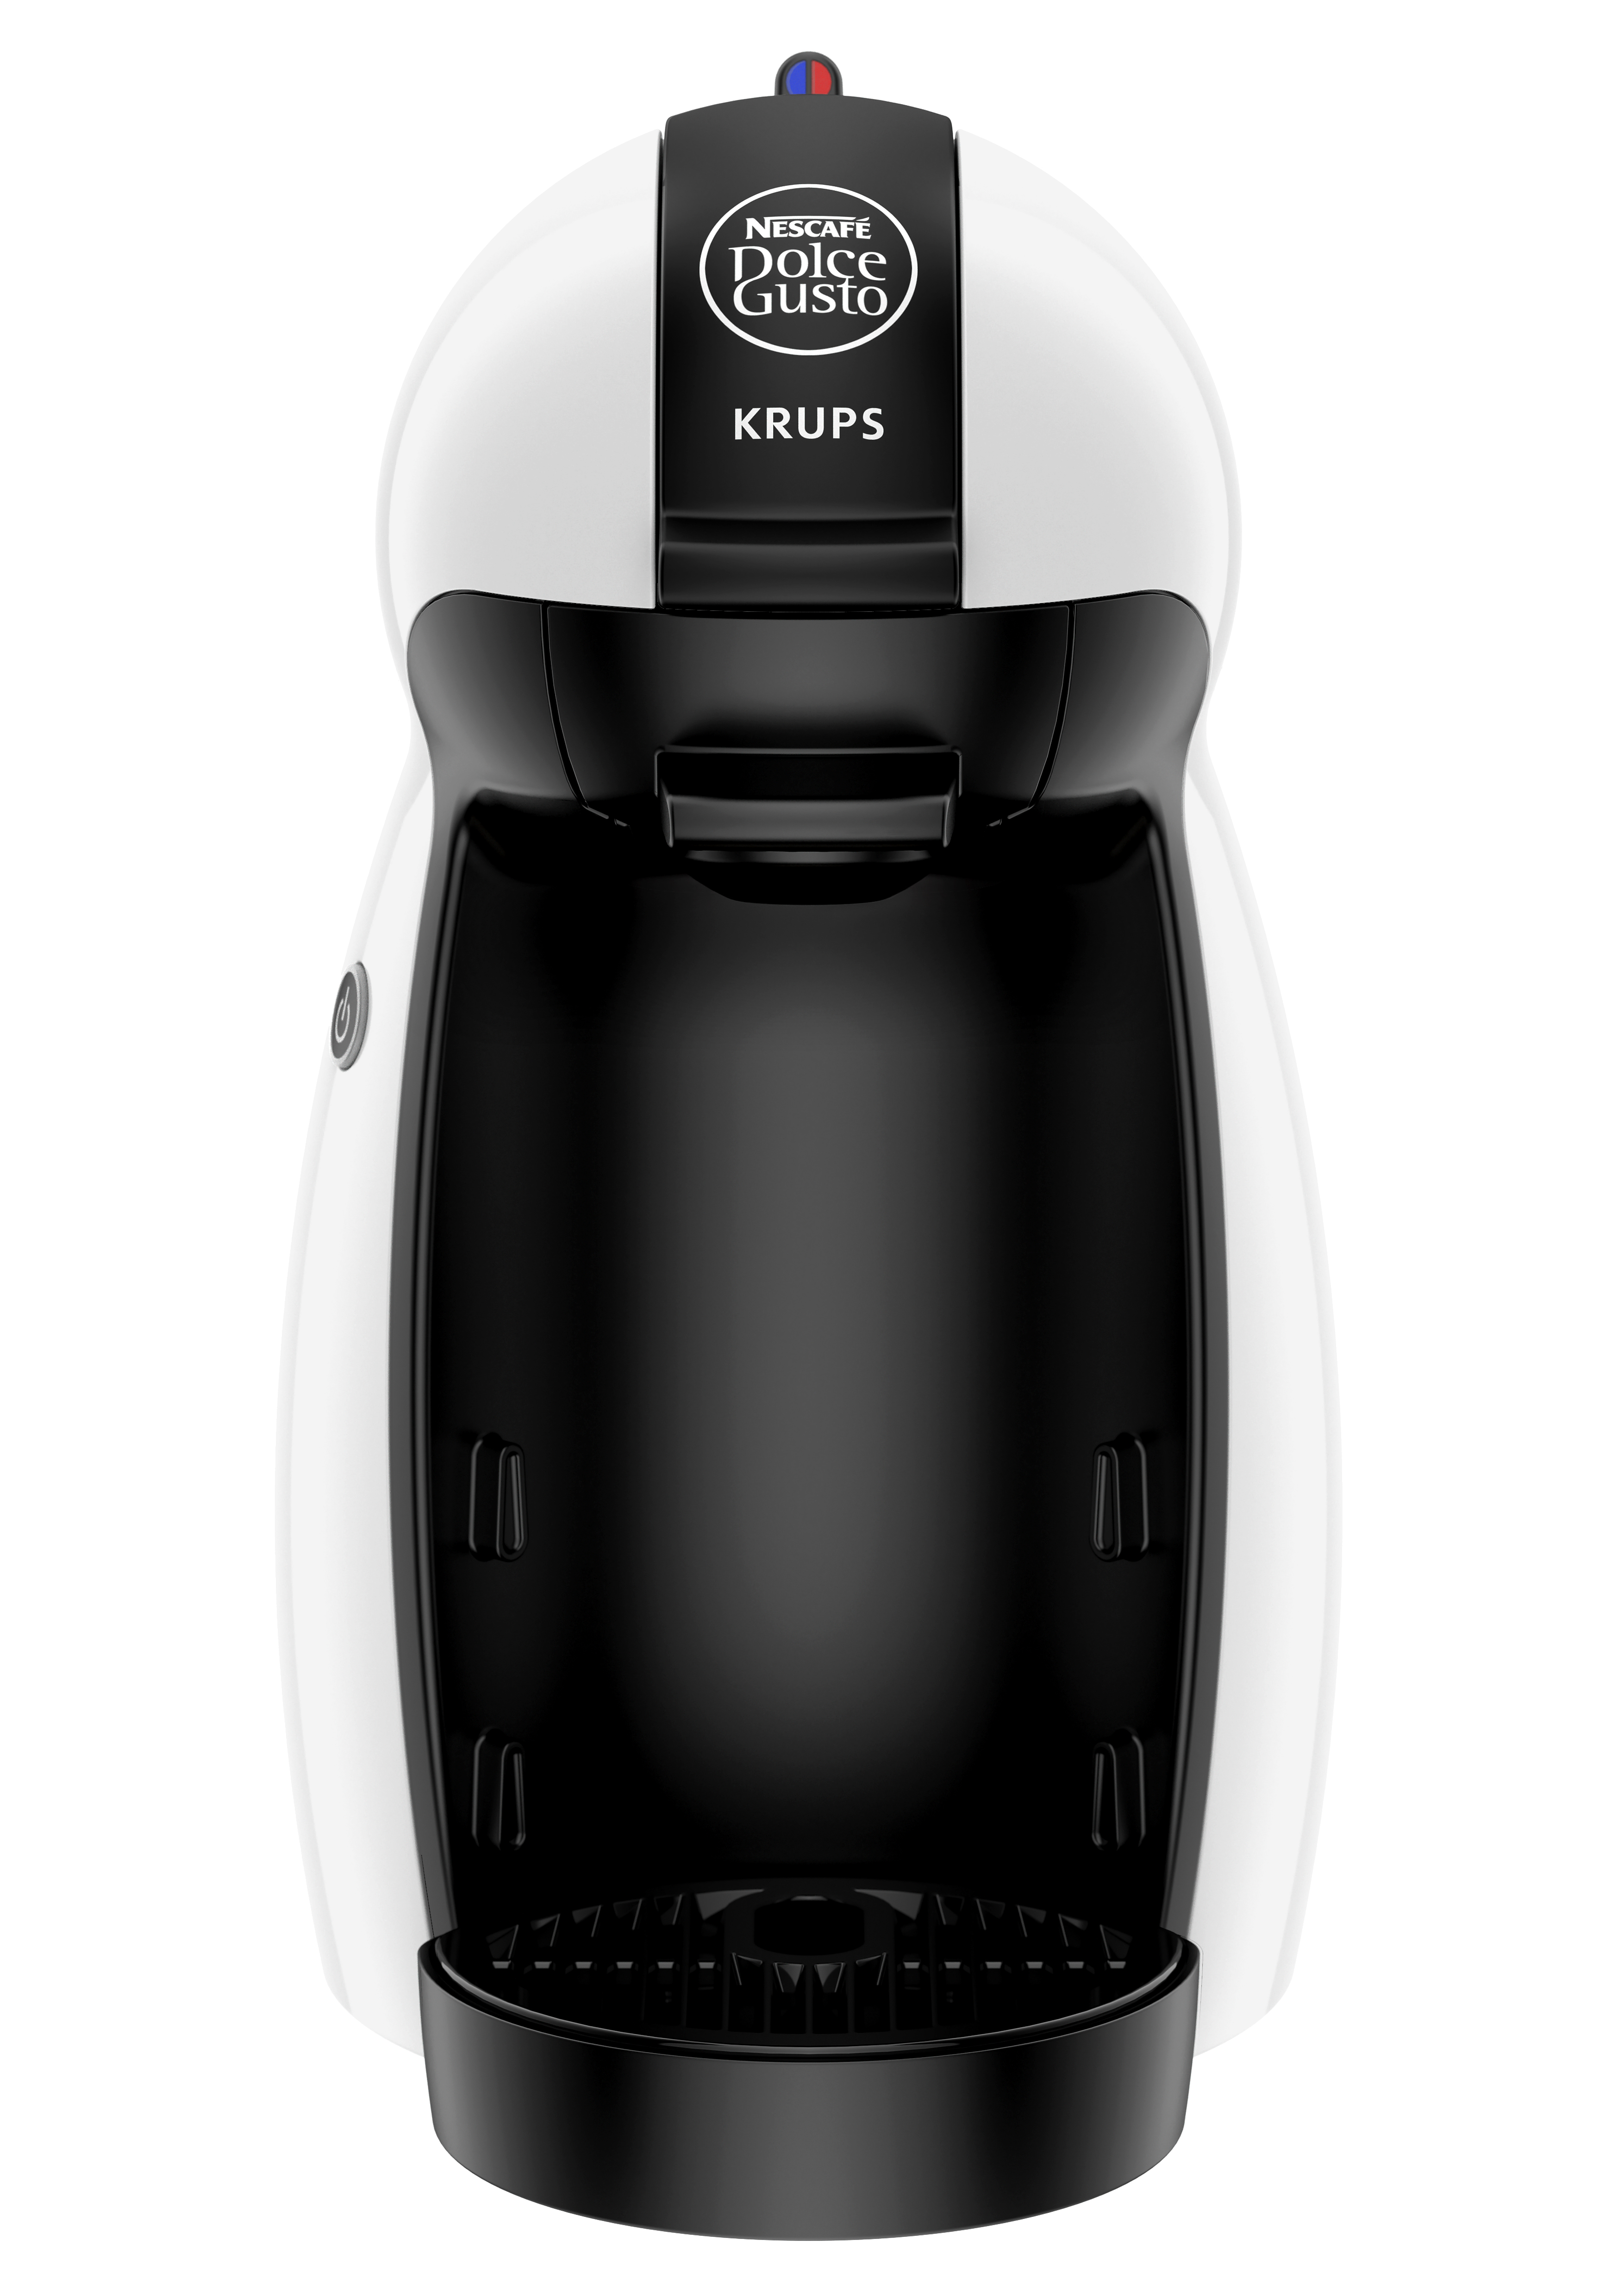 krups kp100240 nescafe dolce gusto piccolo pod coffee machine white ebay. Black Bedroom Furniture Sets. Home Design Ideas